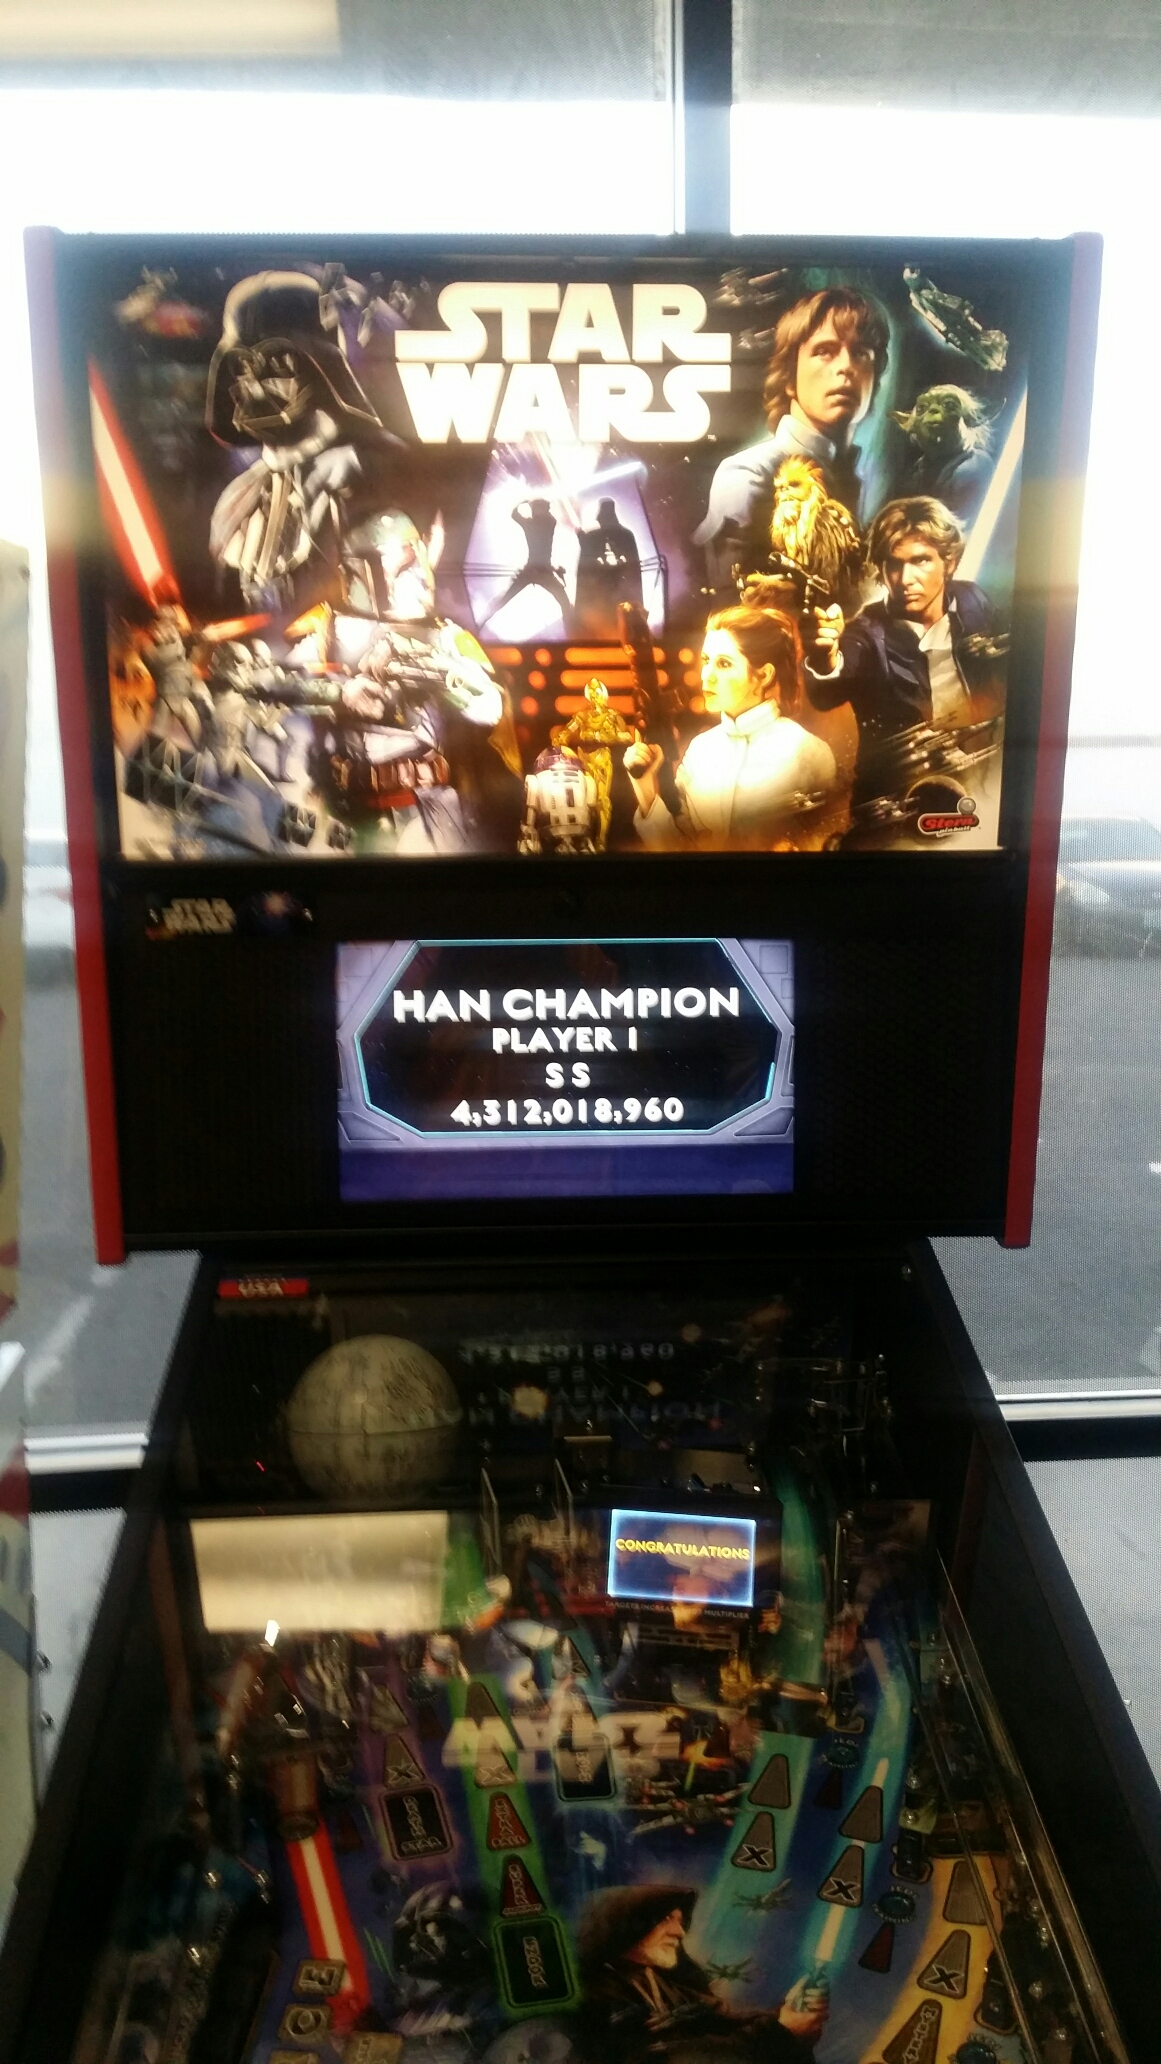 Stern Pinball: 2017 - Han Champion 4,312,018,960 points